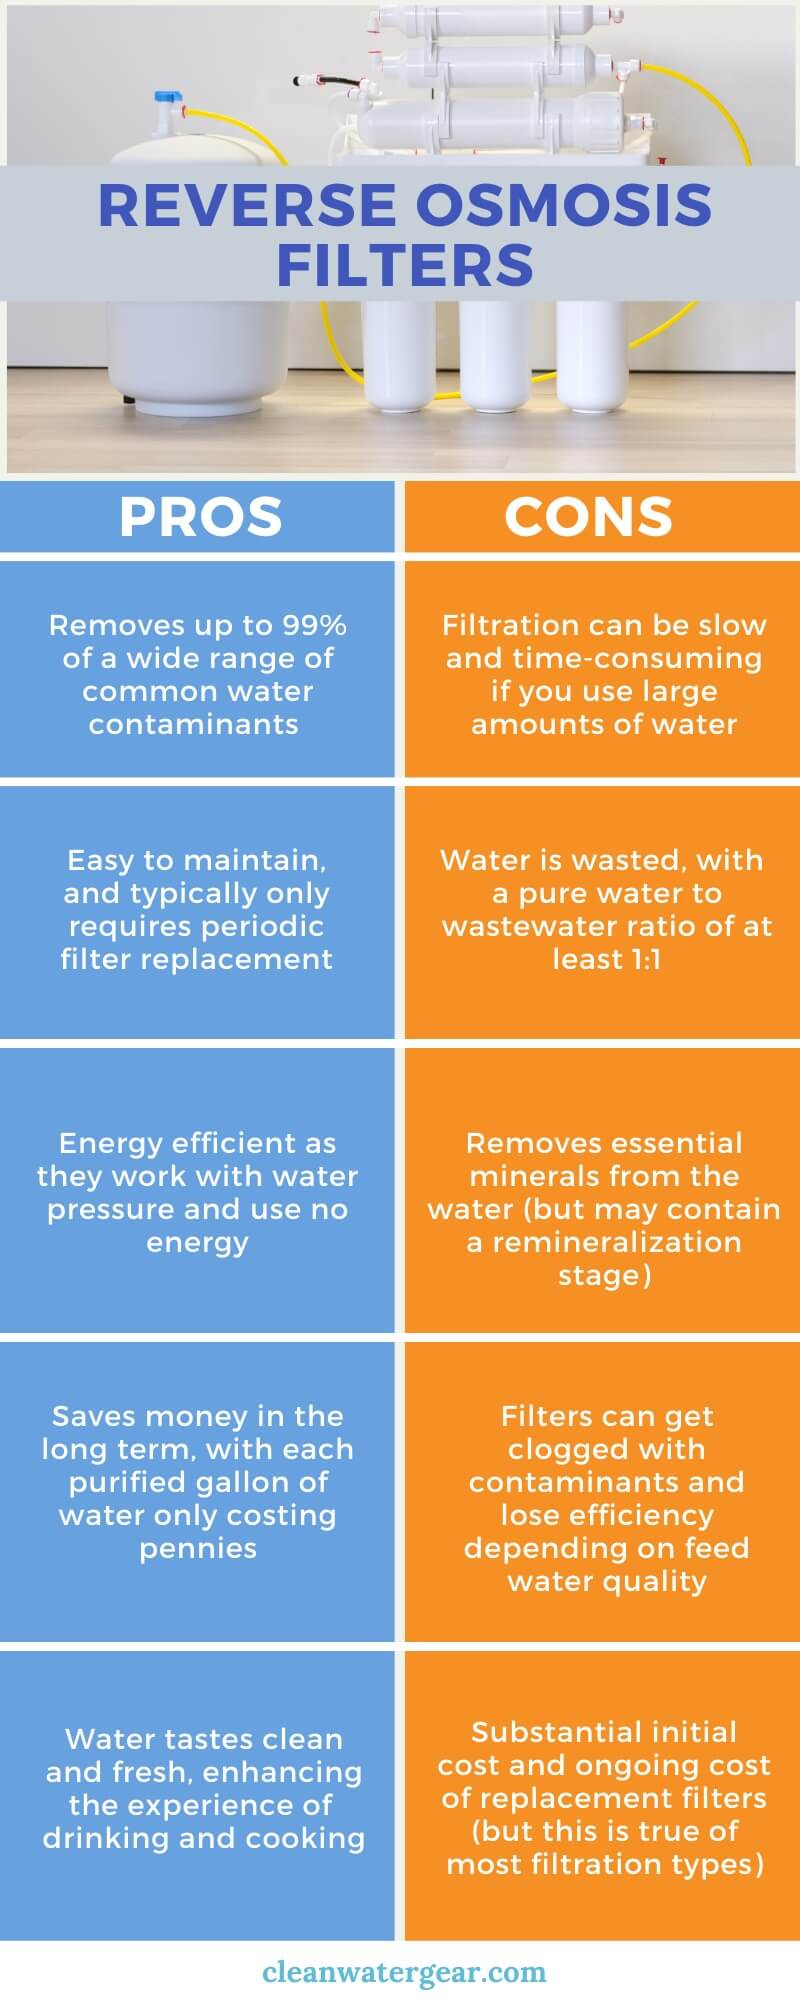 Pros and Cons of Reverse Osmosis